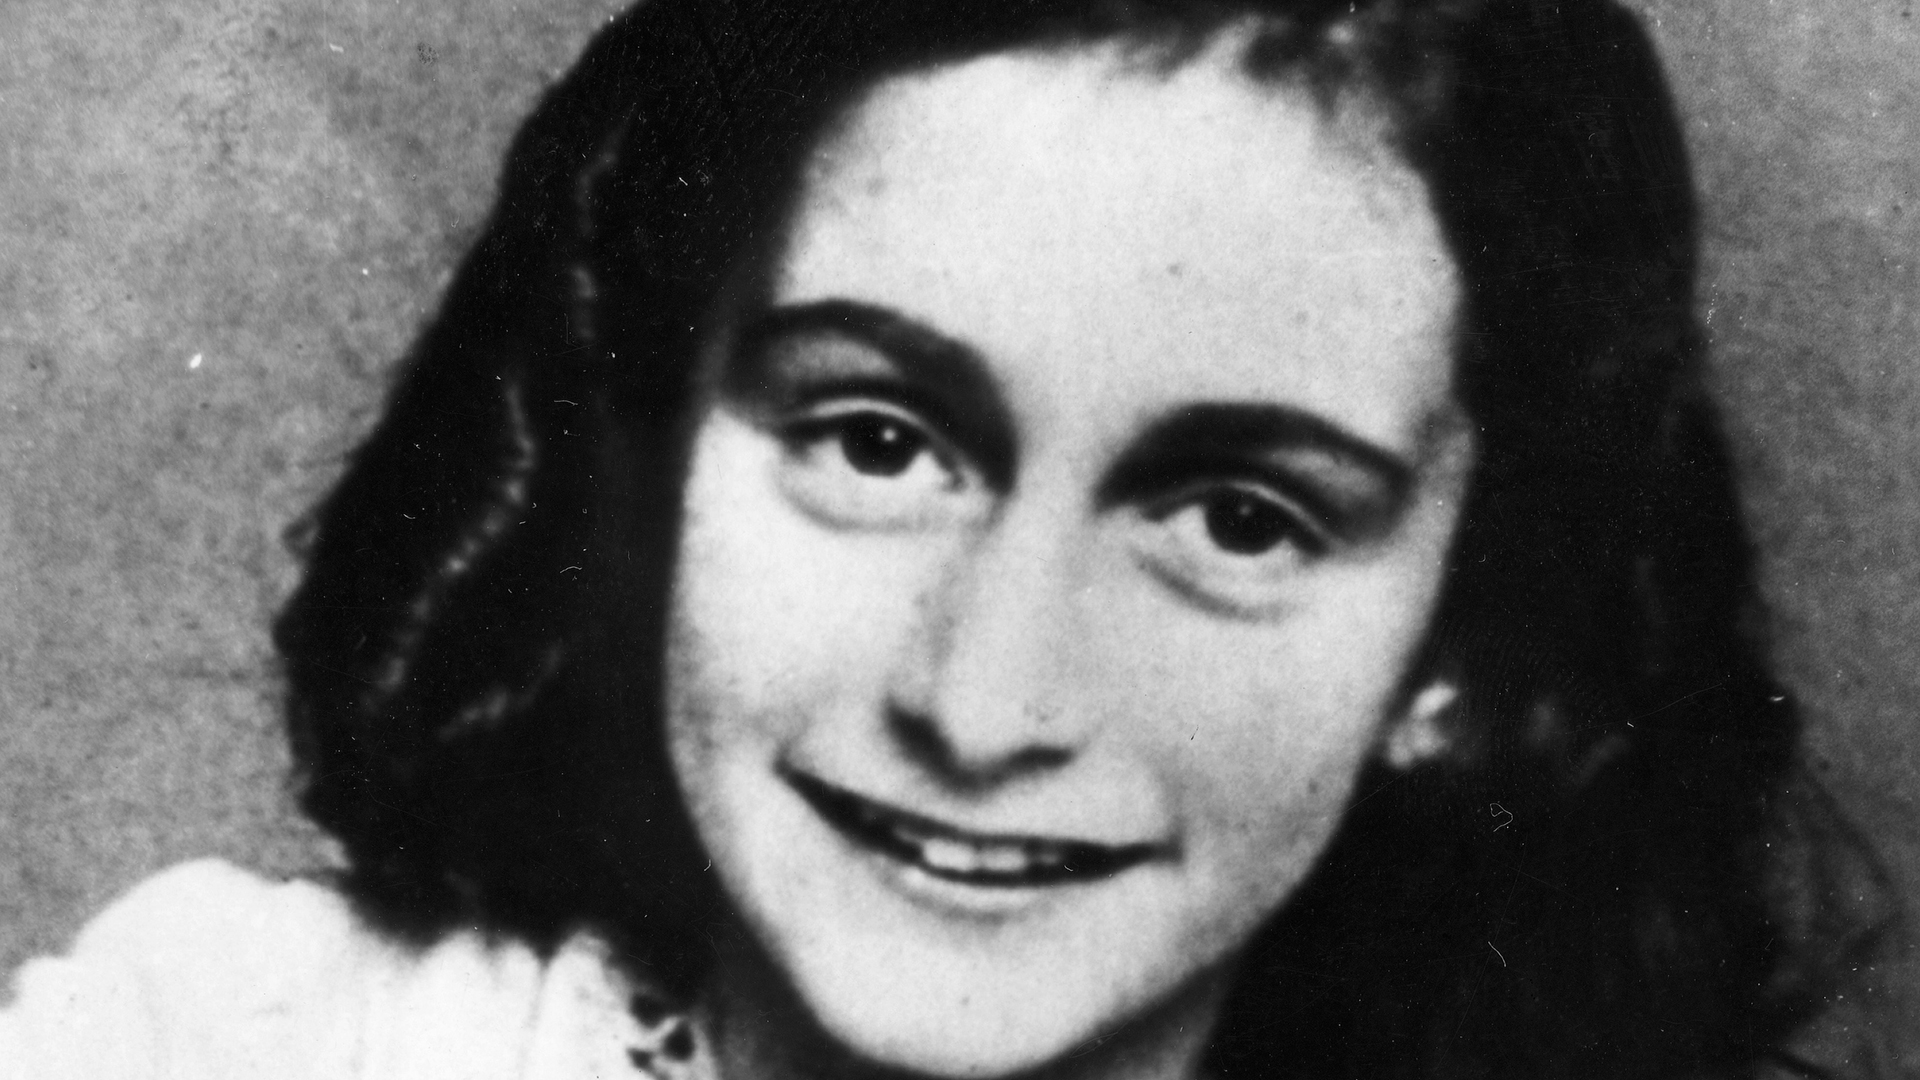 anne frank captured aug 04 1944 com cc settings